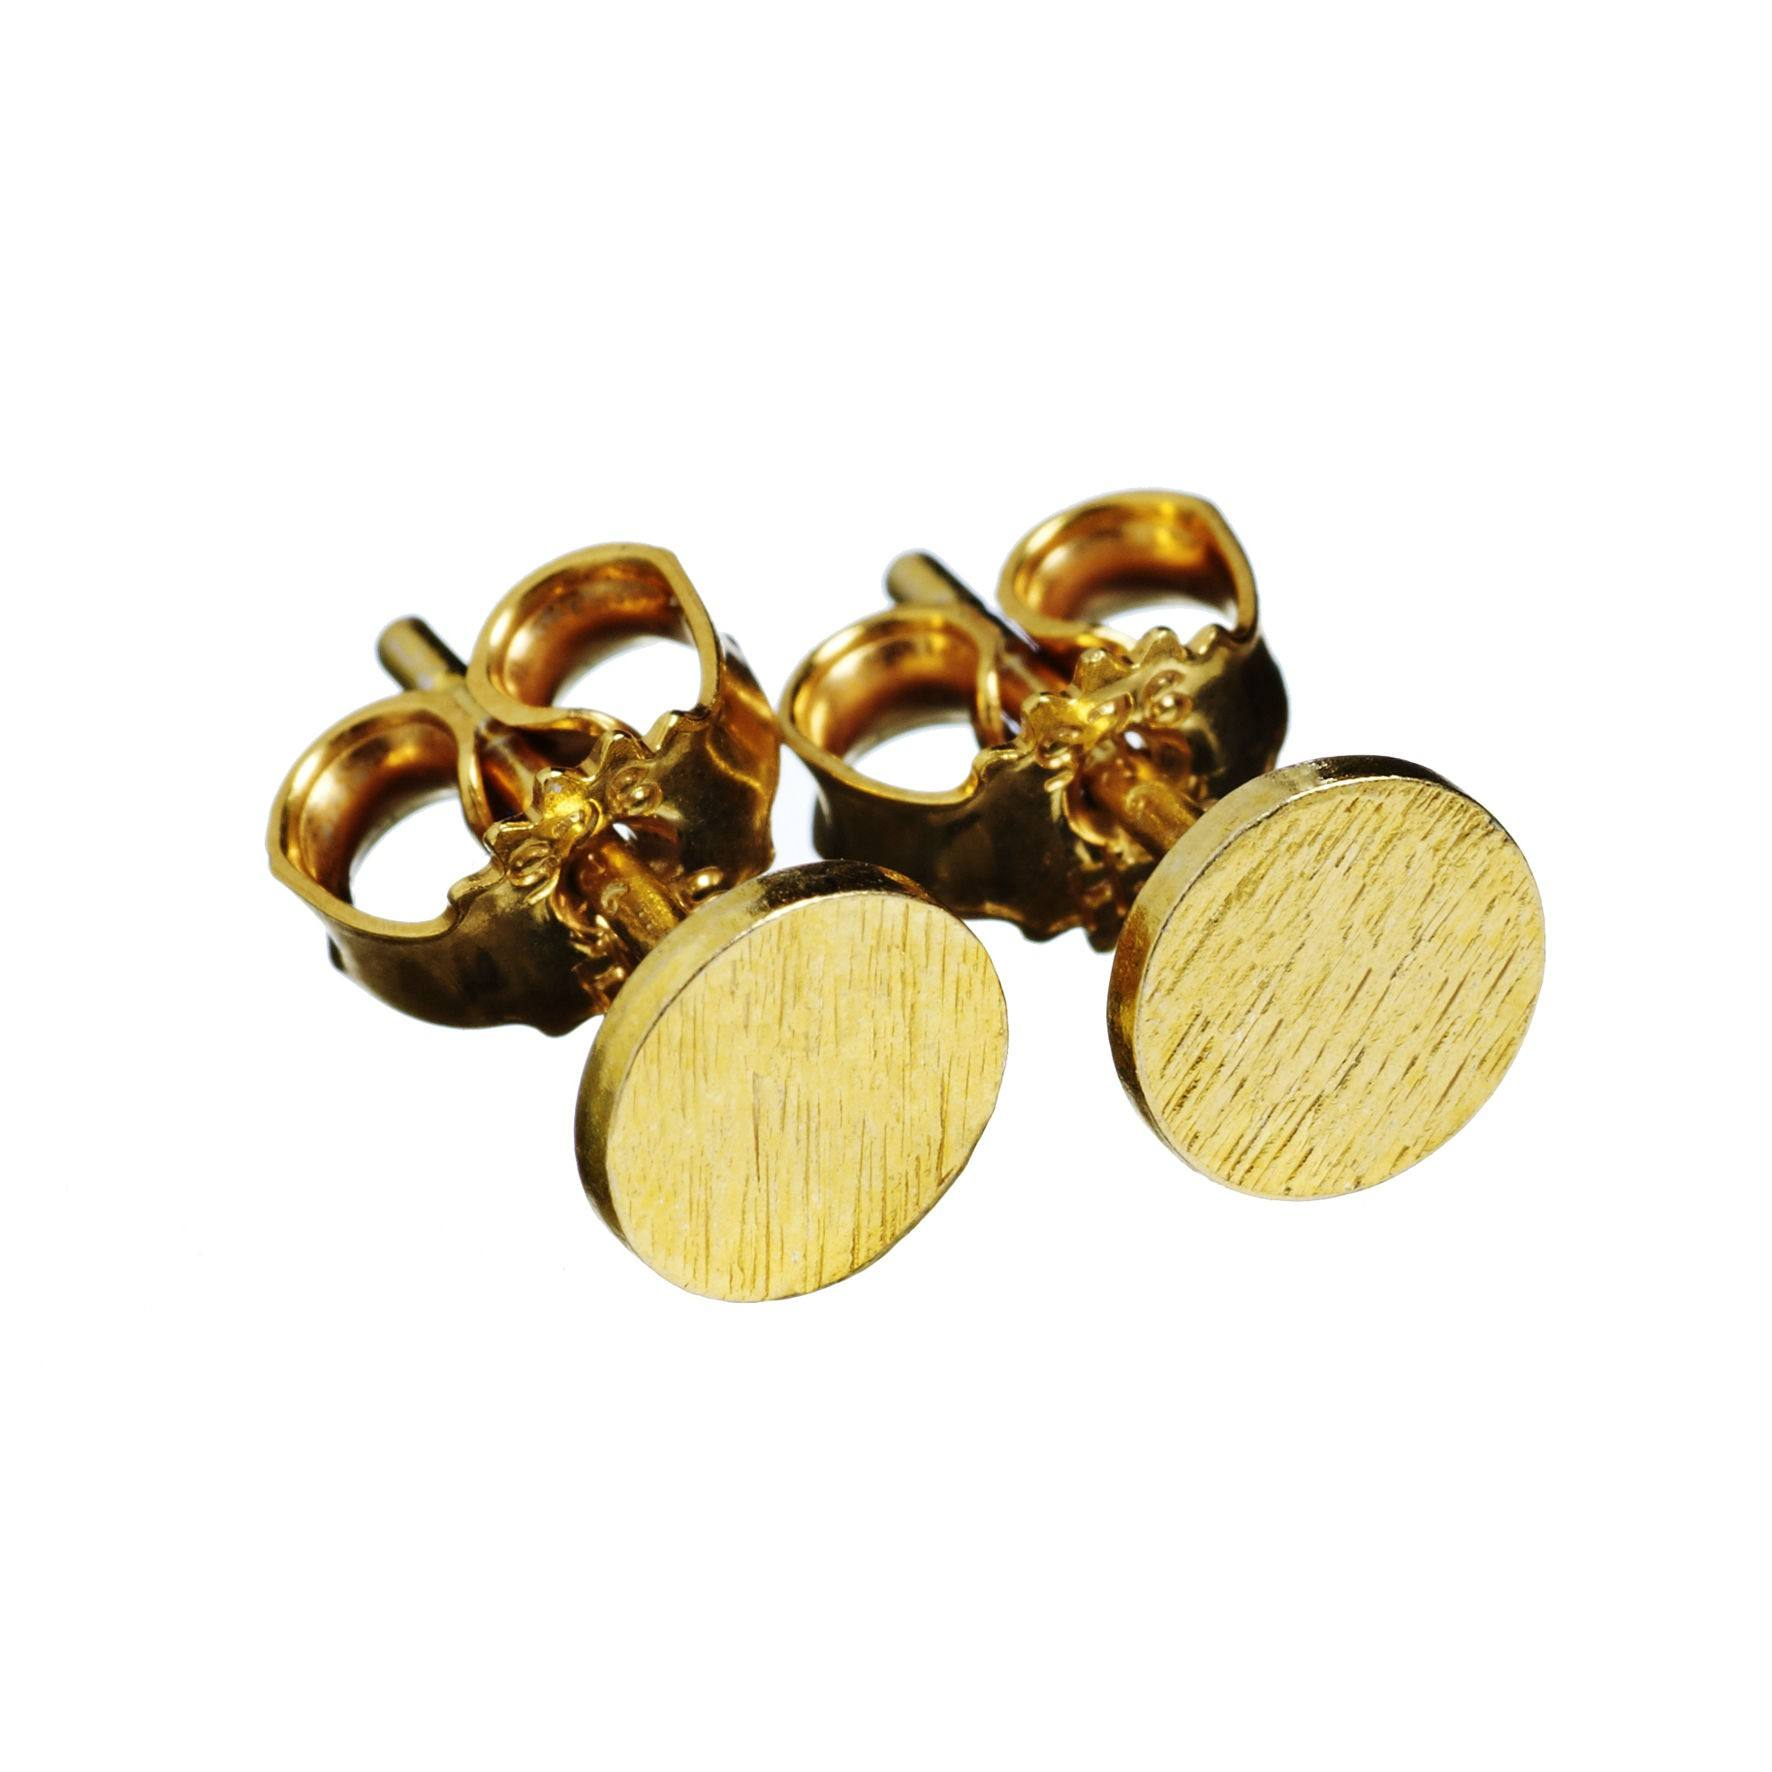 https://www.selecteddesigners.dk/media/catalog/product/c/o/co-1101f-gold.jpg